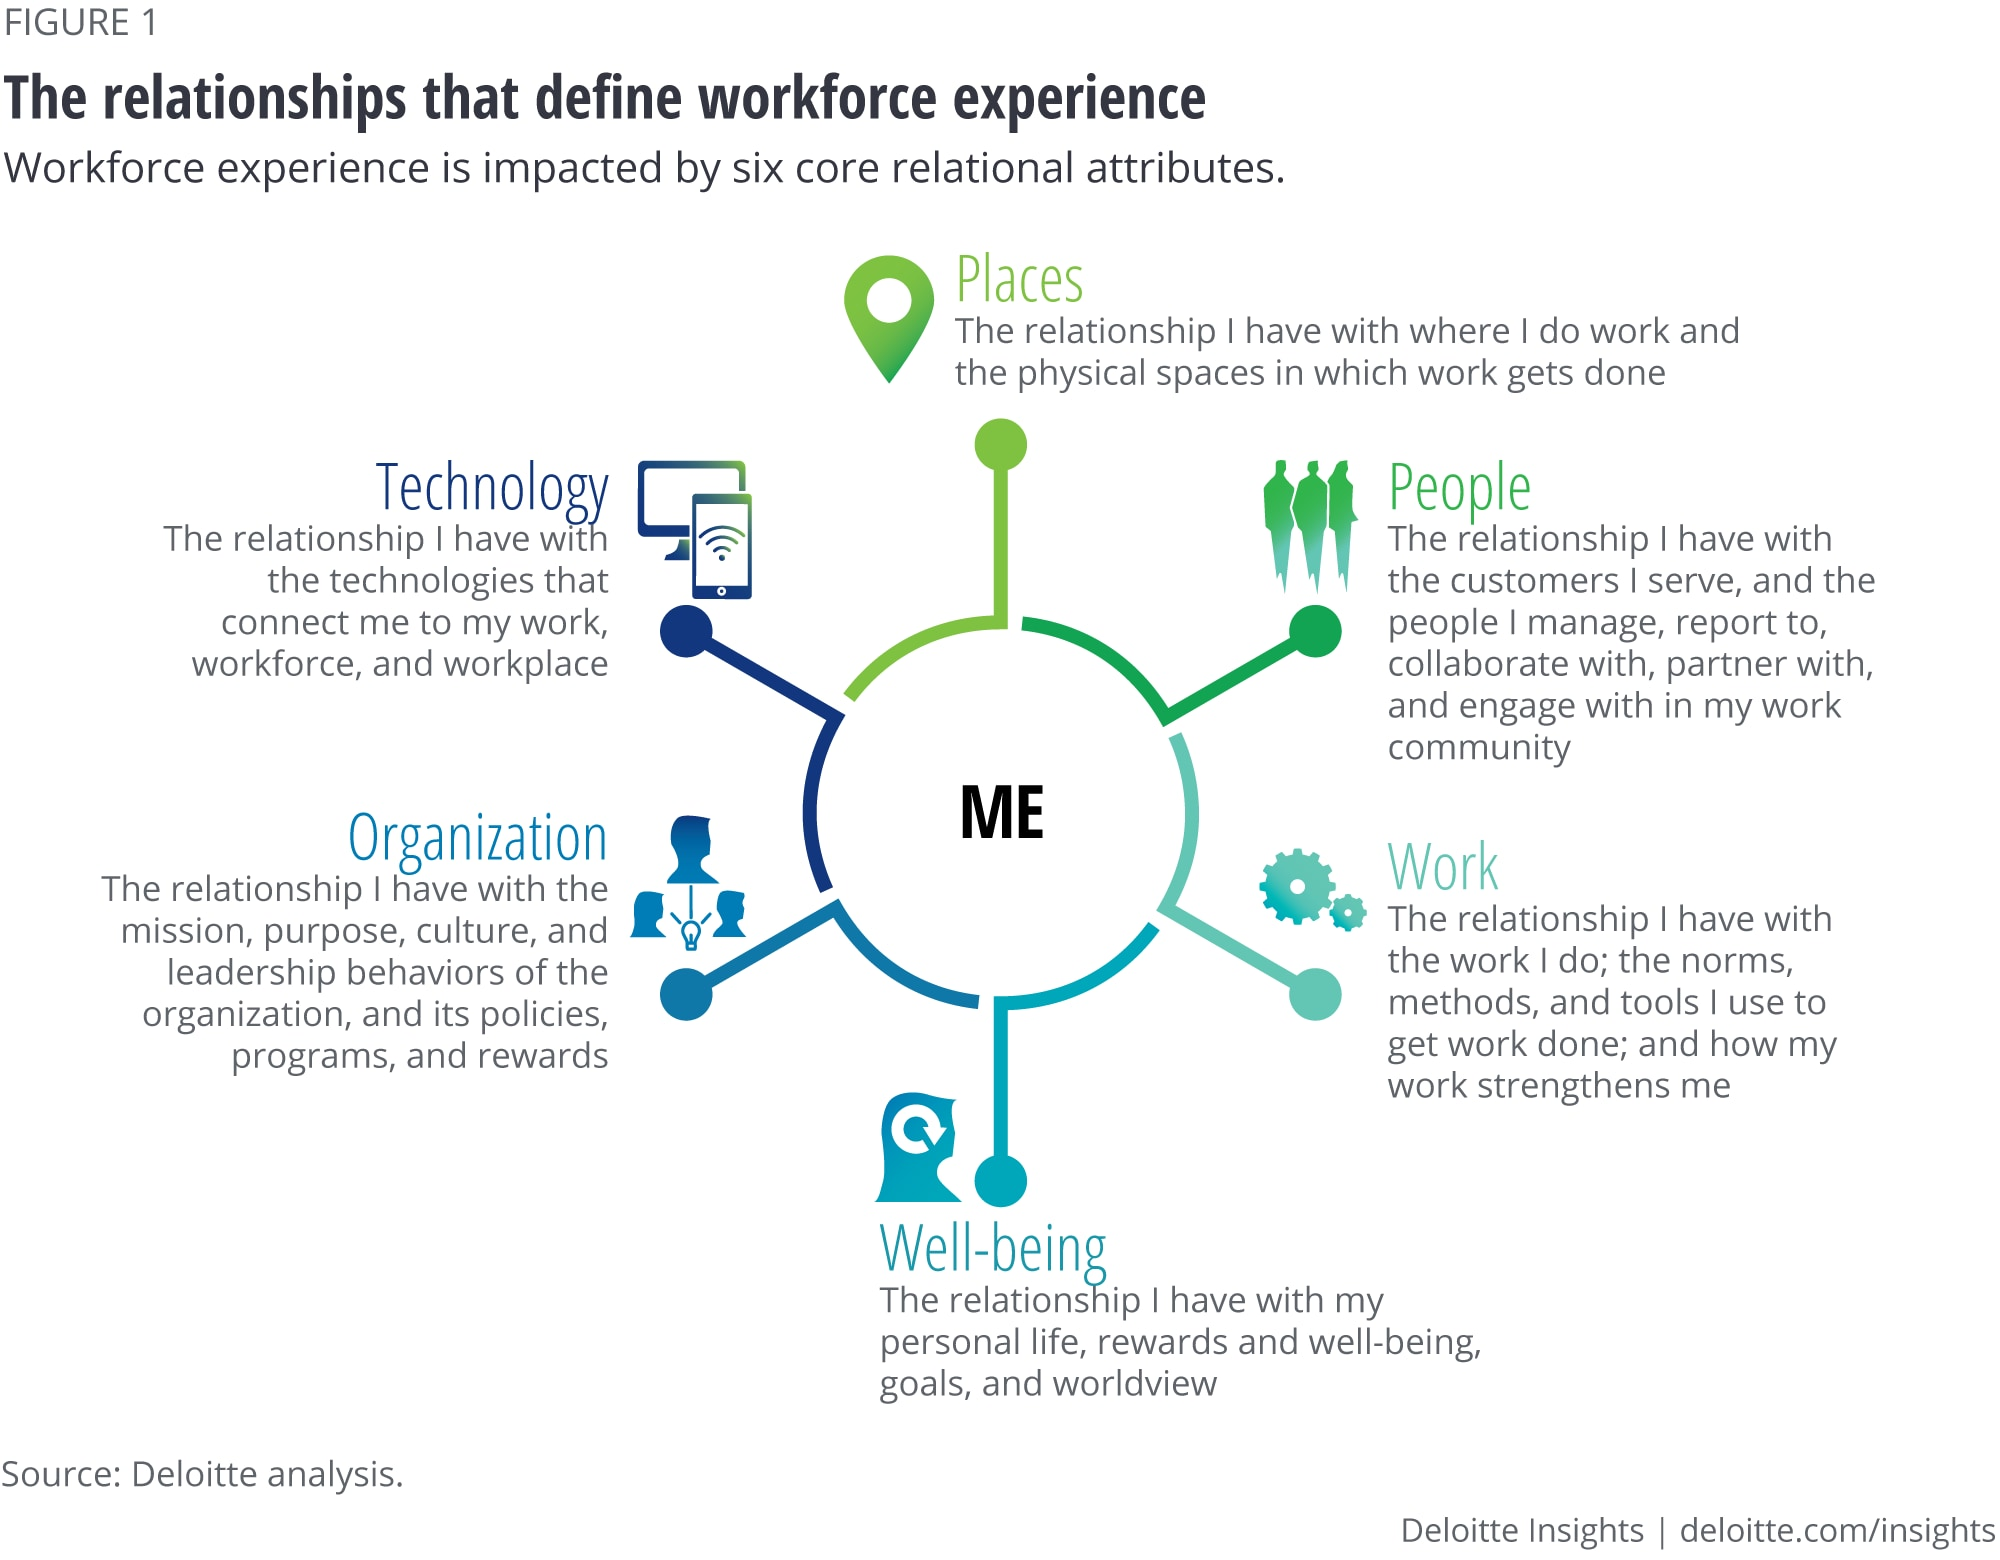 The relationships that define workforce experience